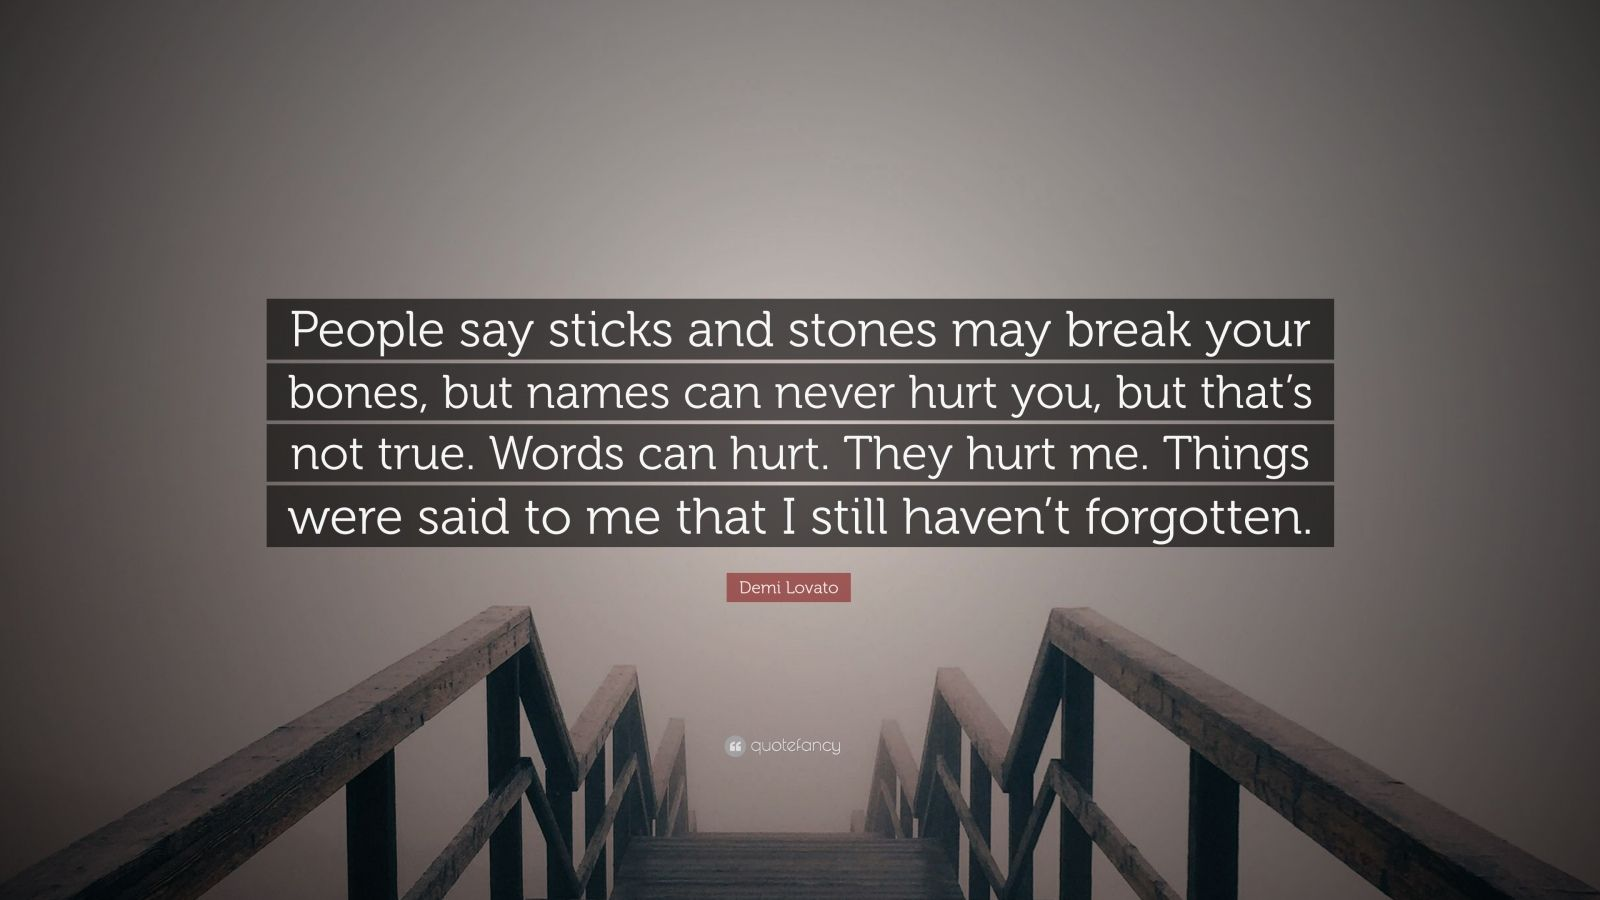 """Demi Lovato Quote: """"People say sticks and stones may break your bones, but names can never hurt you, but that's not true. Words can hurt. They hurt me. Things were said to me that I still haven't forgotten."""""""